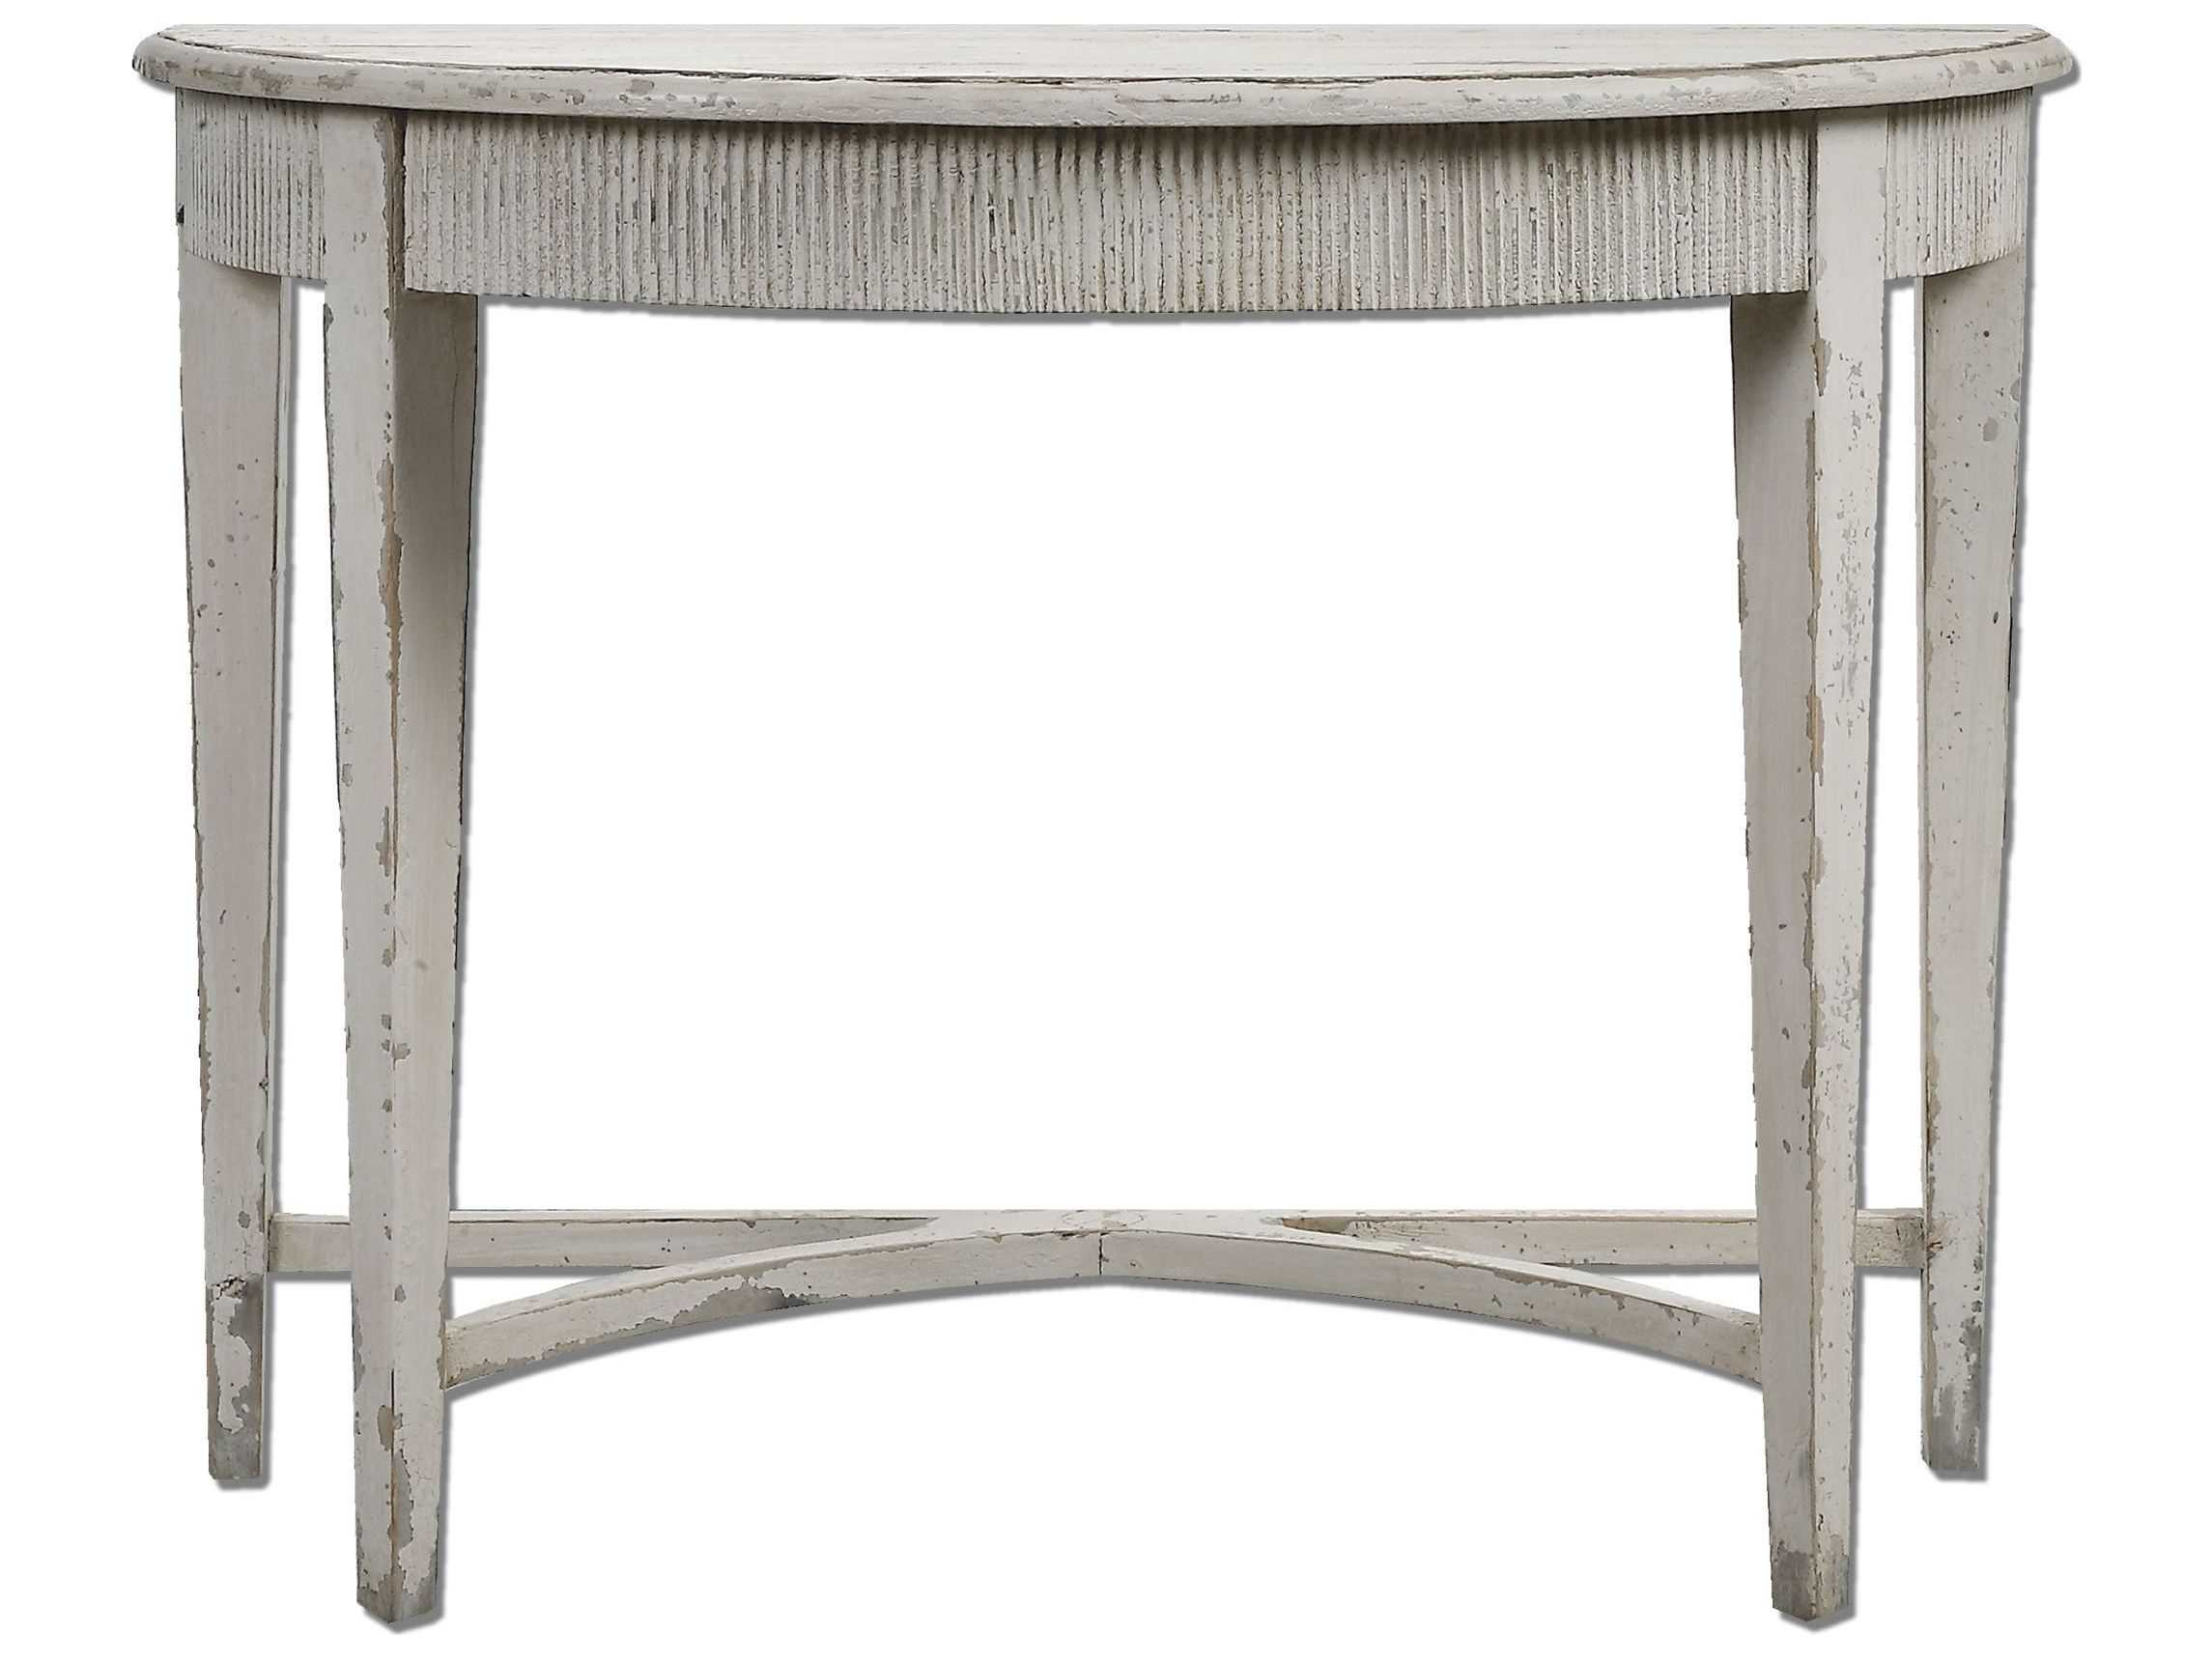 Uttermost parisio 43 x 20 demilune antique white console table ut24535 - White demilune console table ...